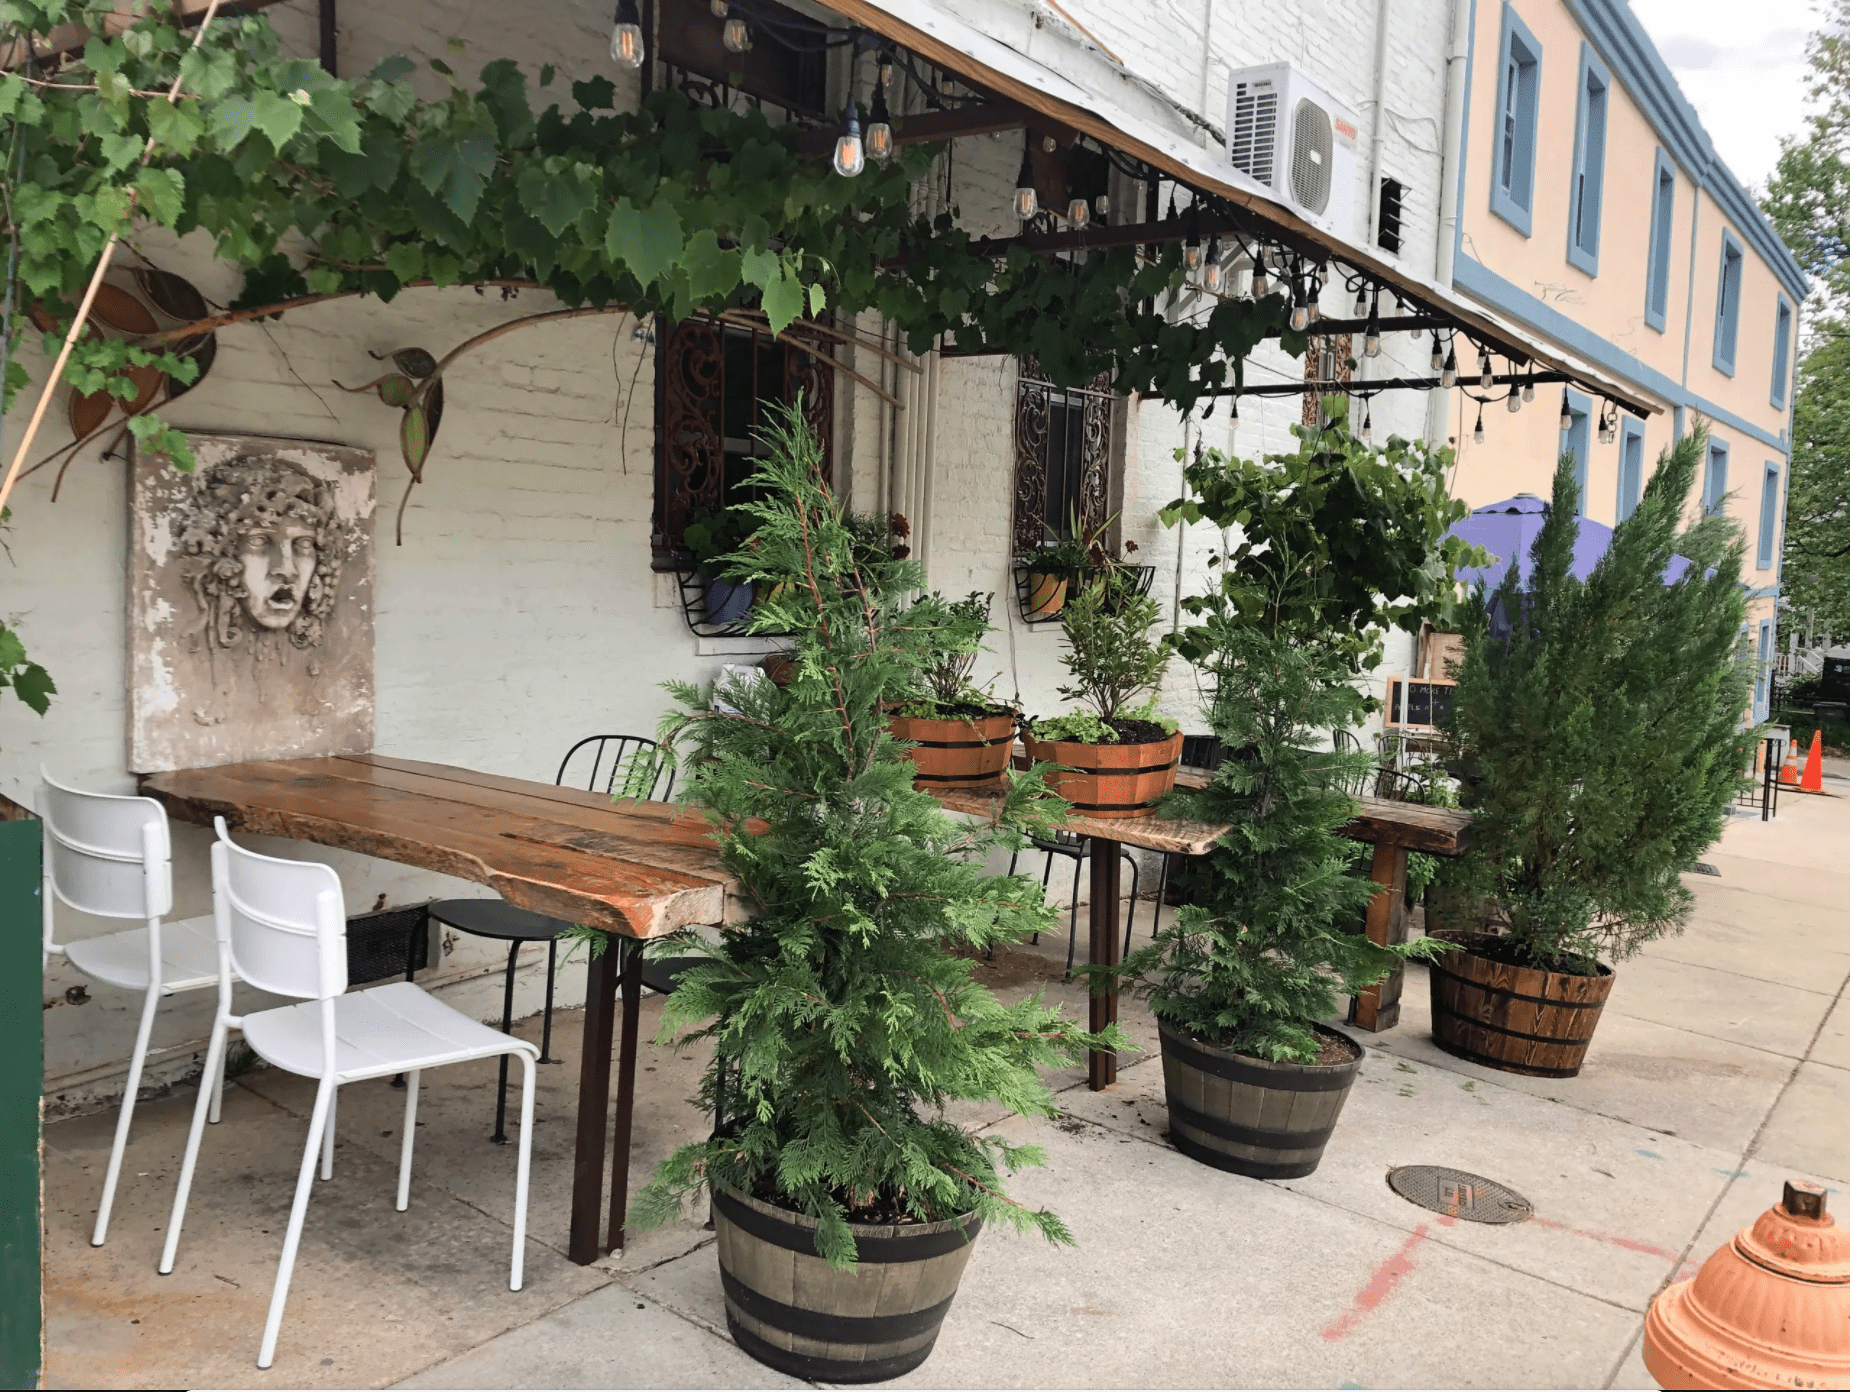 Wooden outdoor tables with potted trees and plants